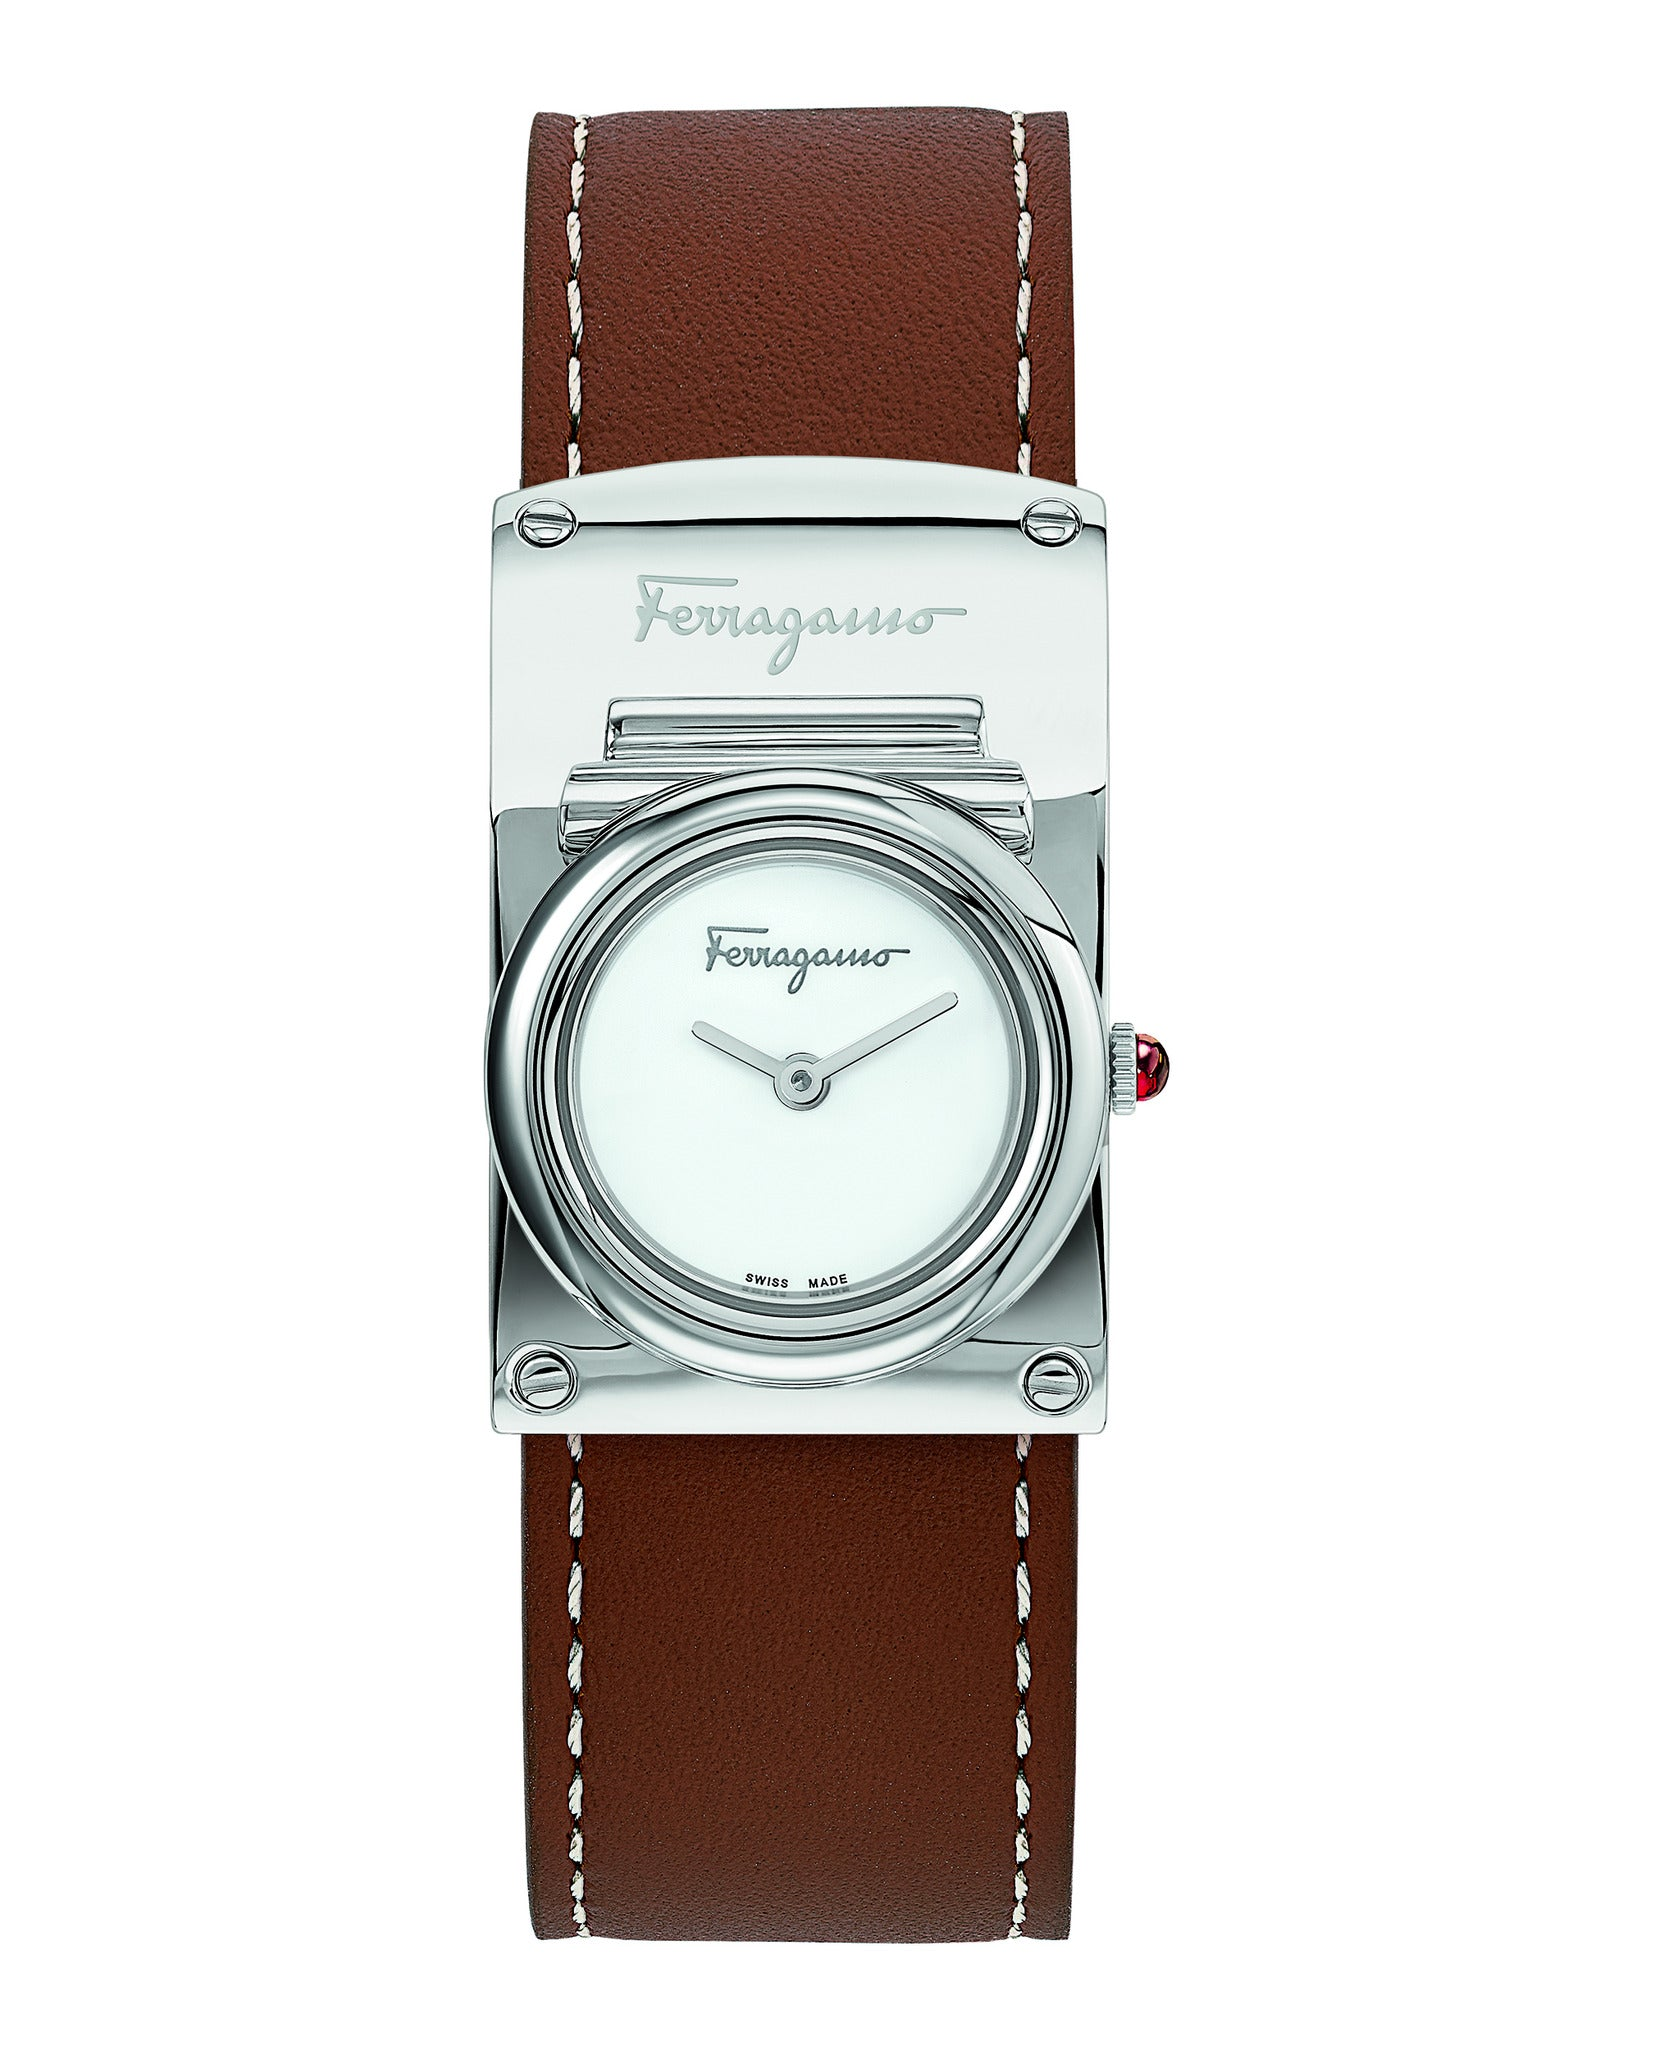 Ferragamo Boxyz Leather Watch